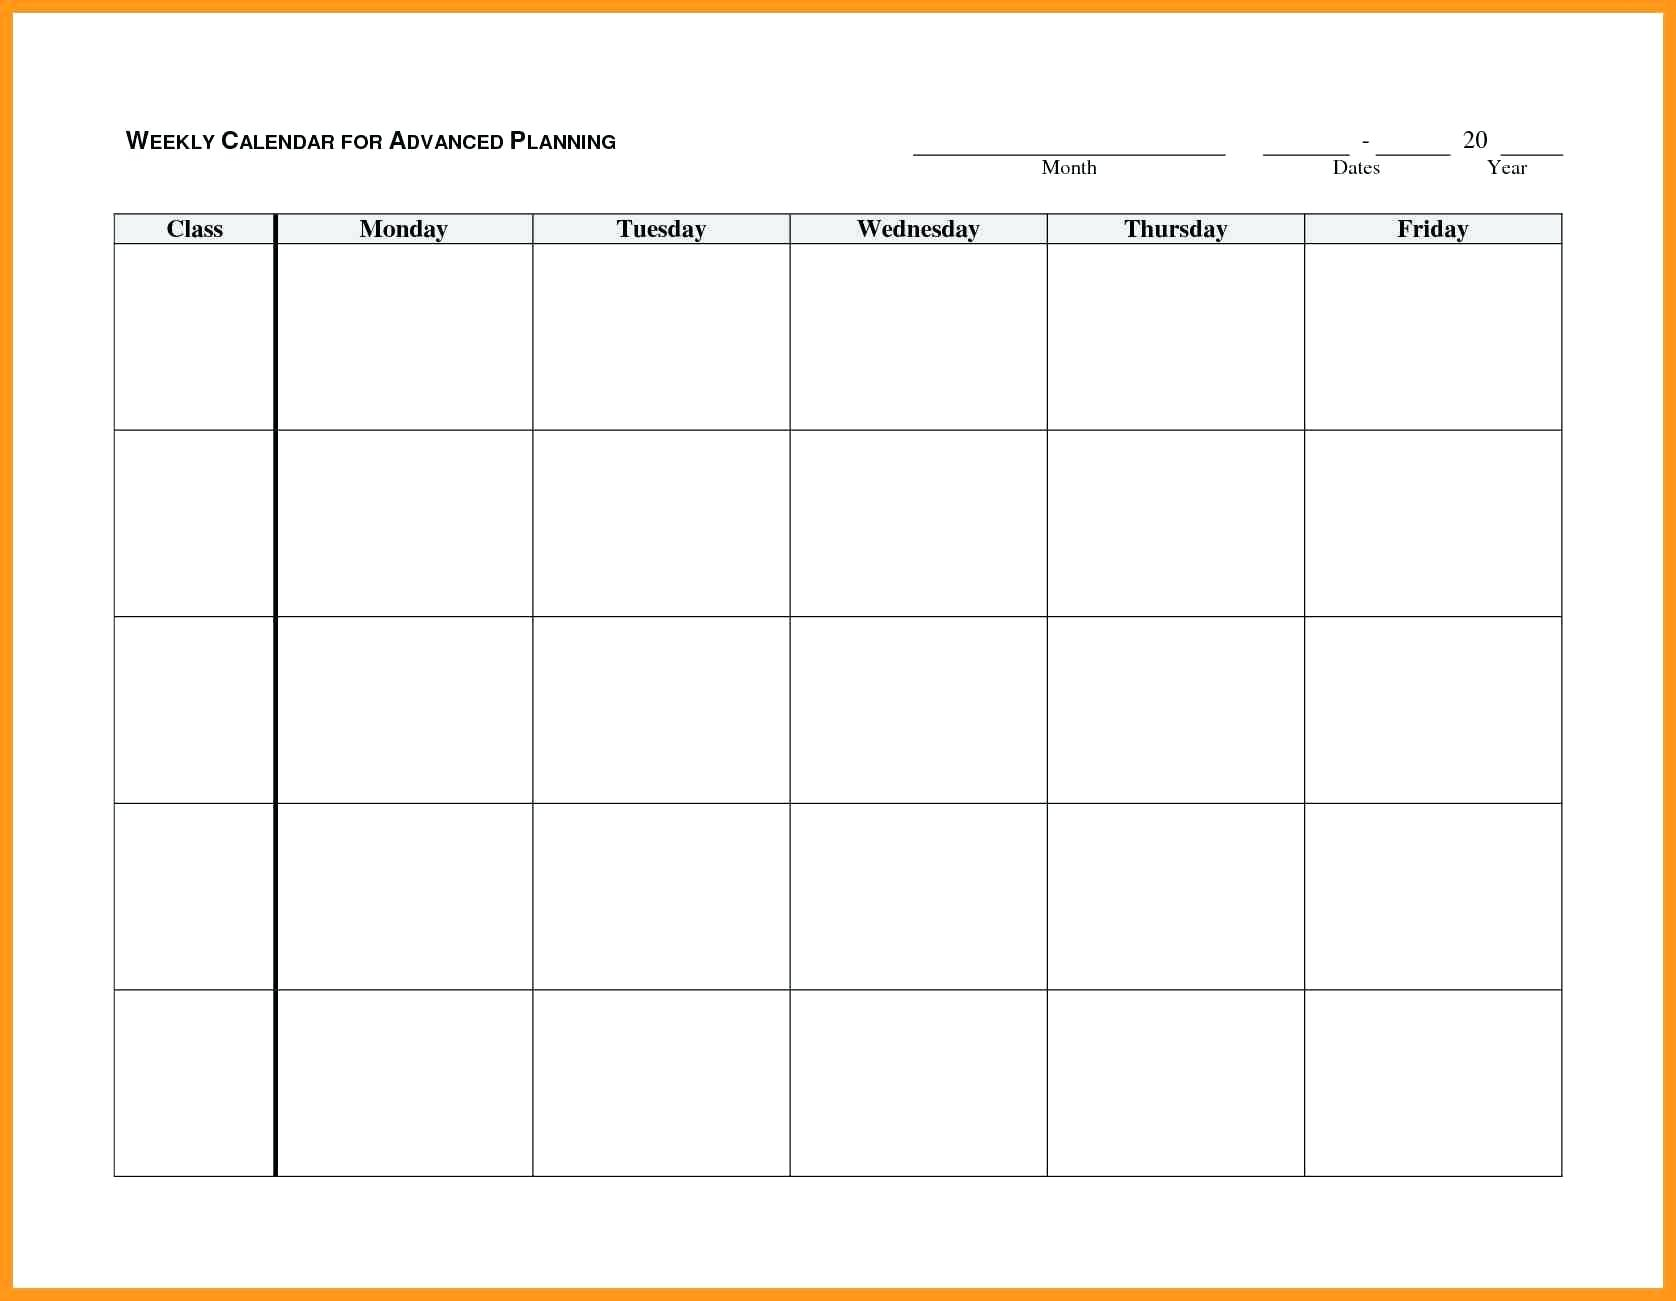 Free Printable Weekly Alendar Monday To Friday Through